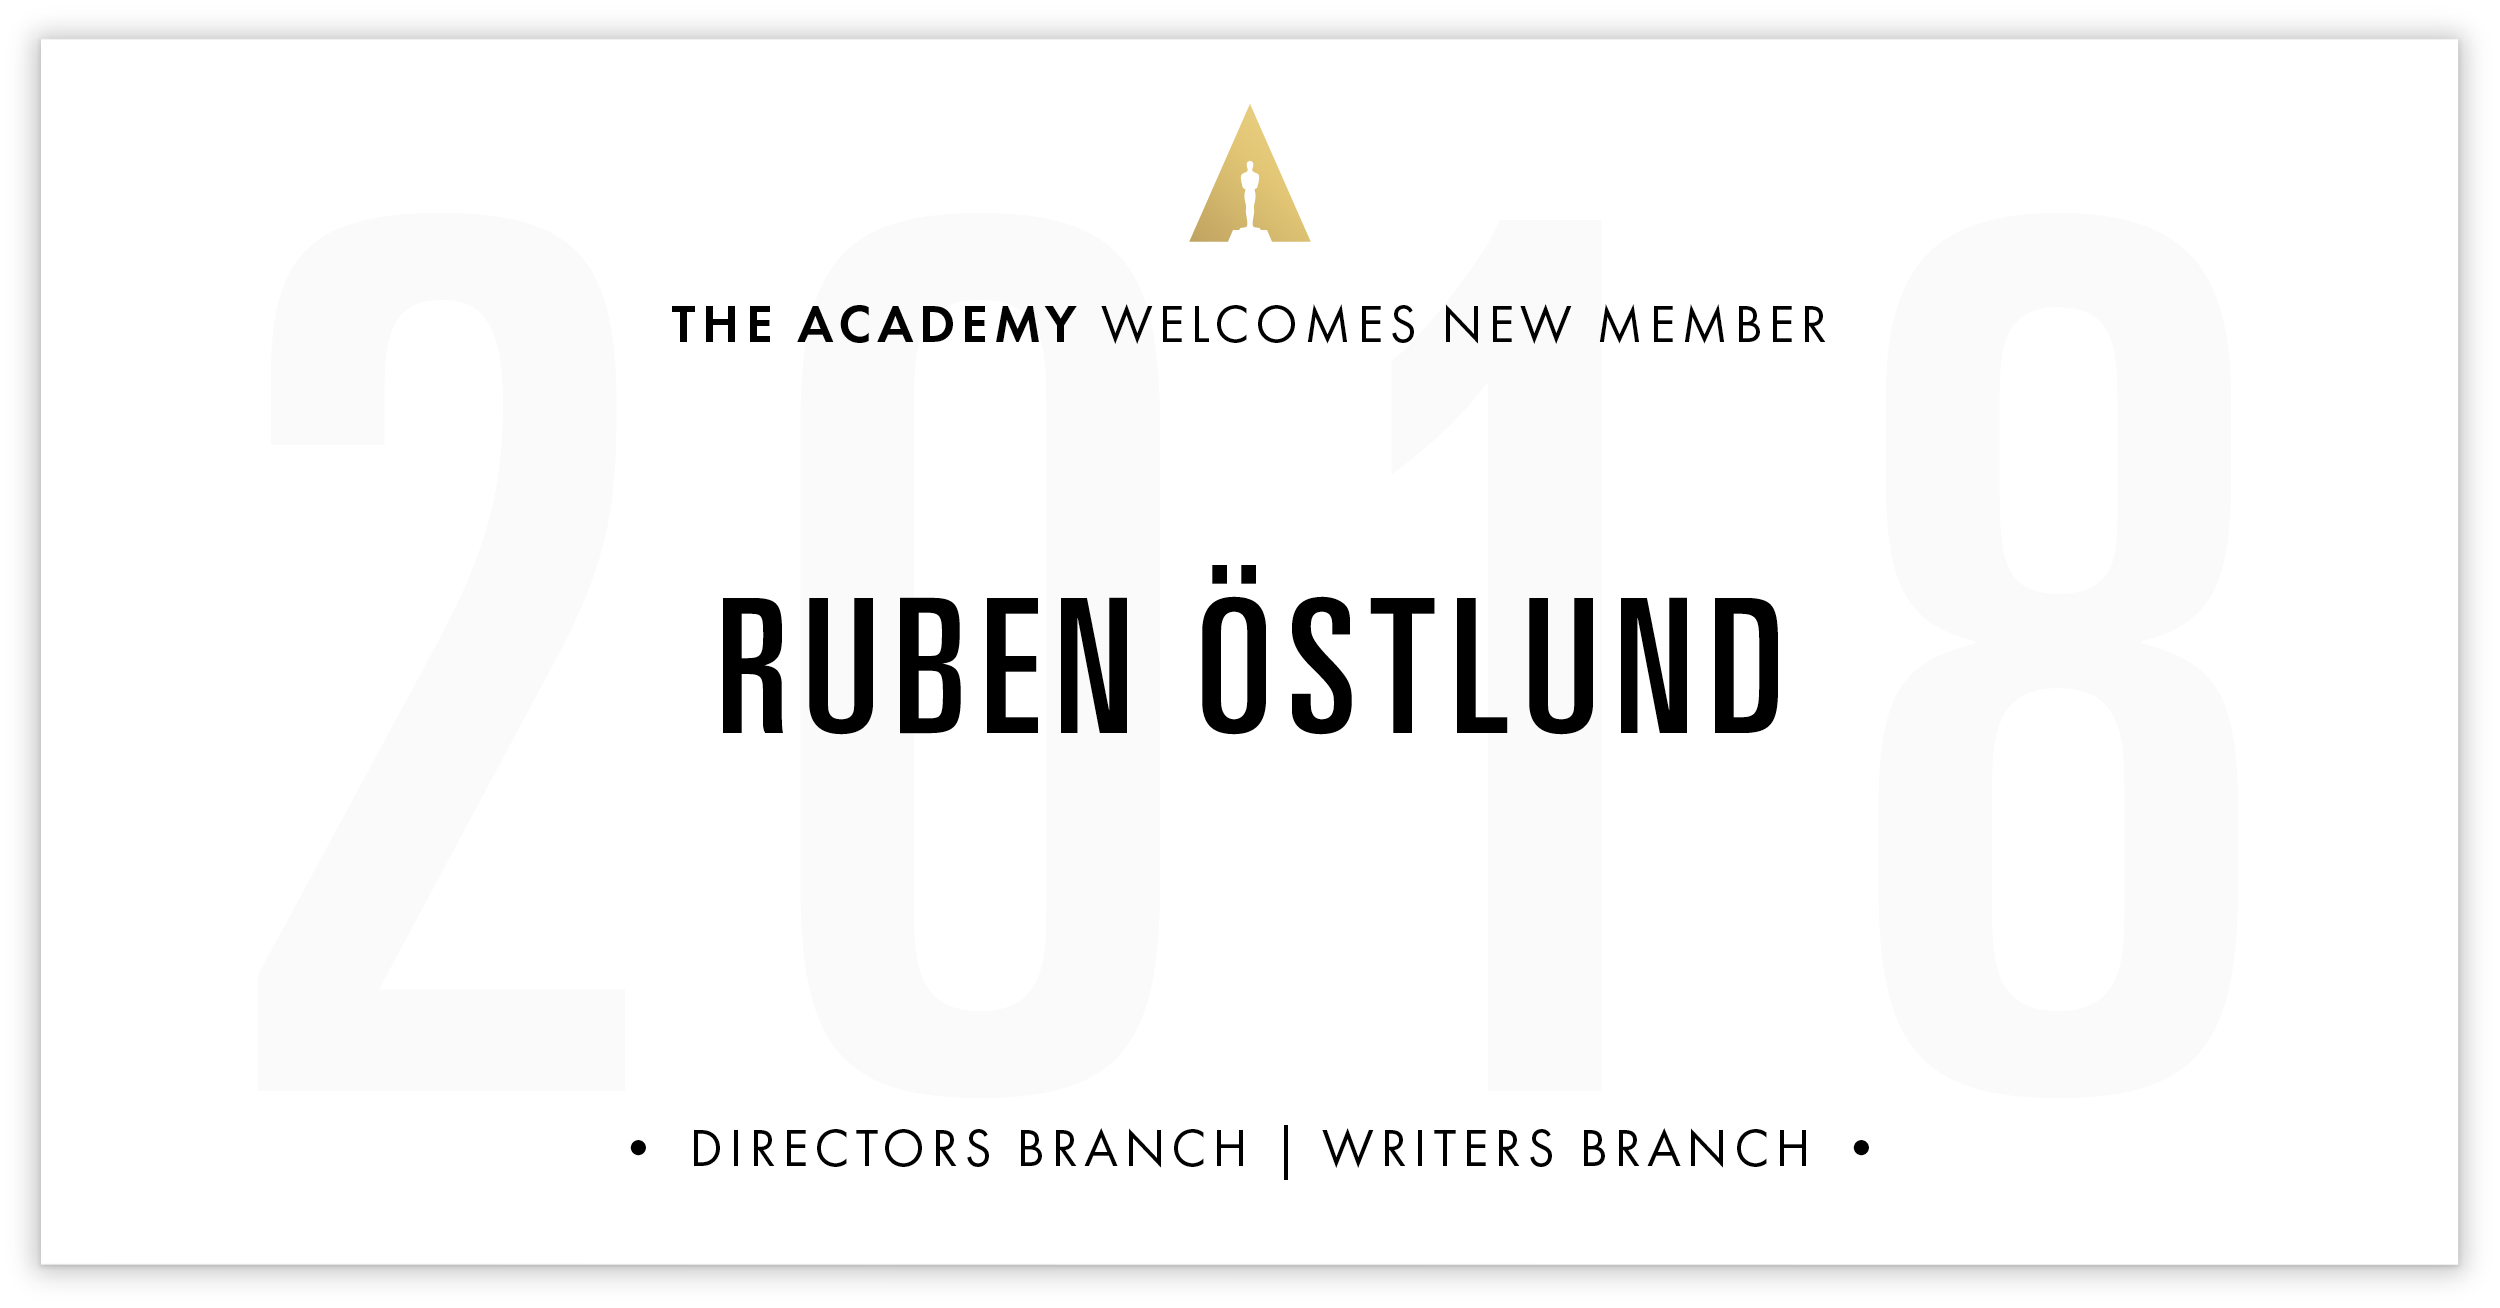 Ruben Östlund is invited!